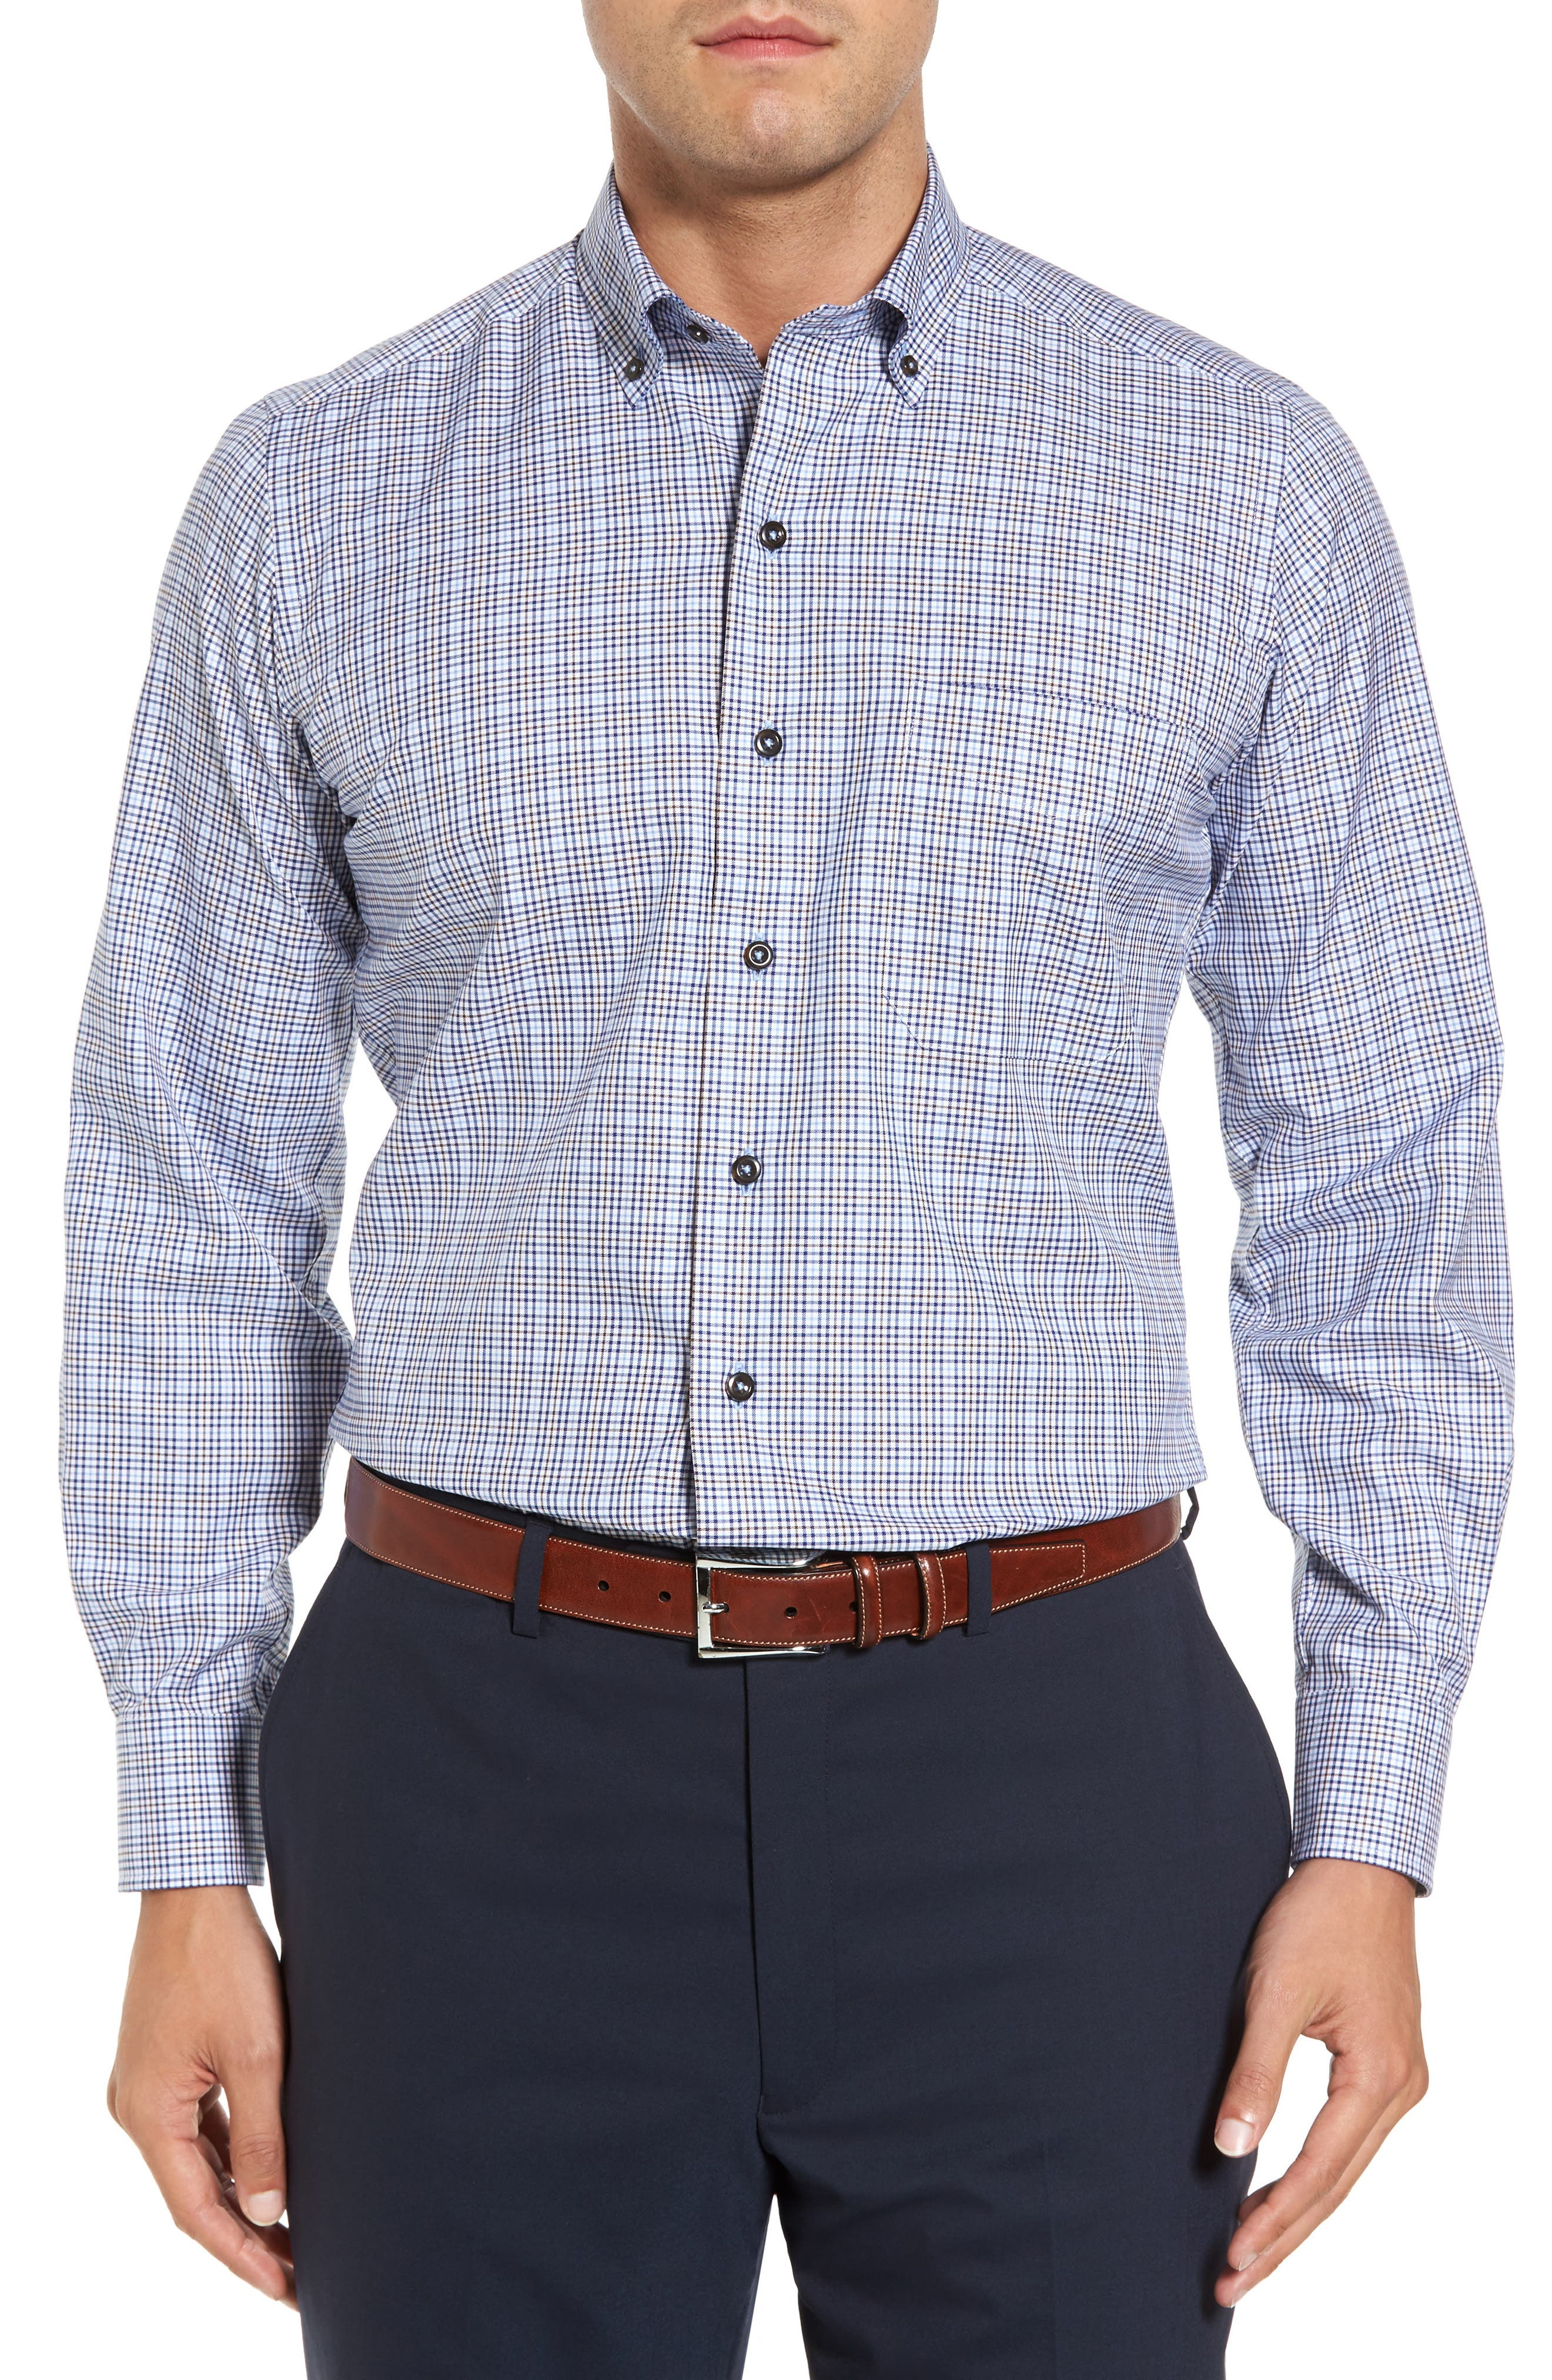 Main Image - David Donahue Regular Fit Plaid Sport Shirt